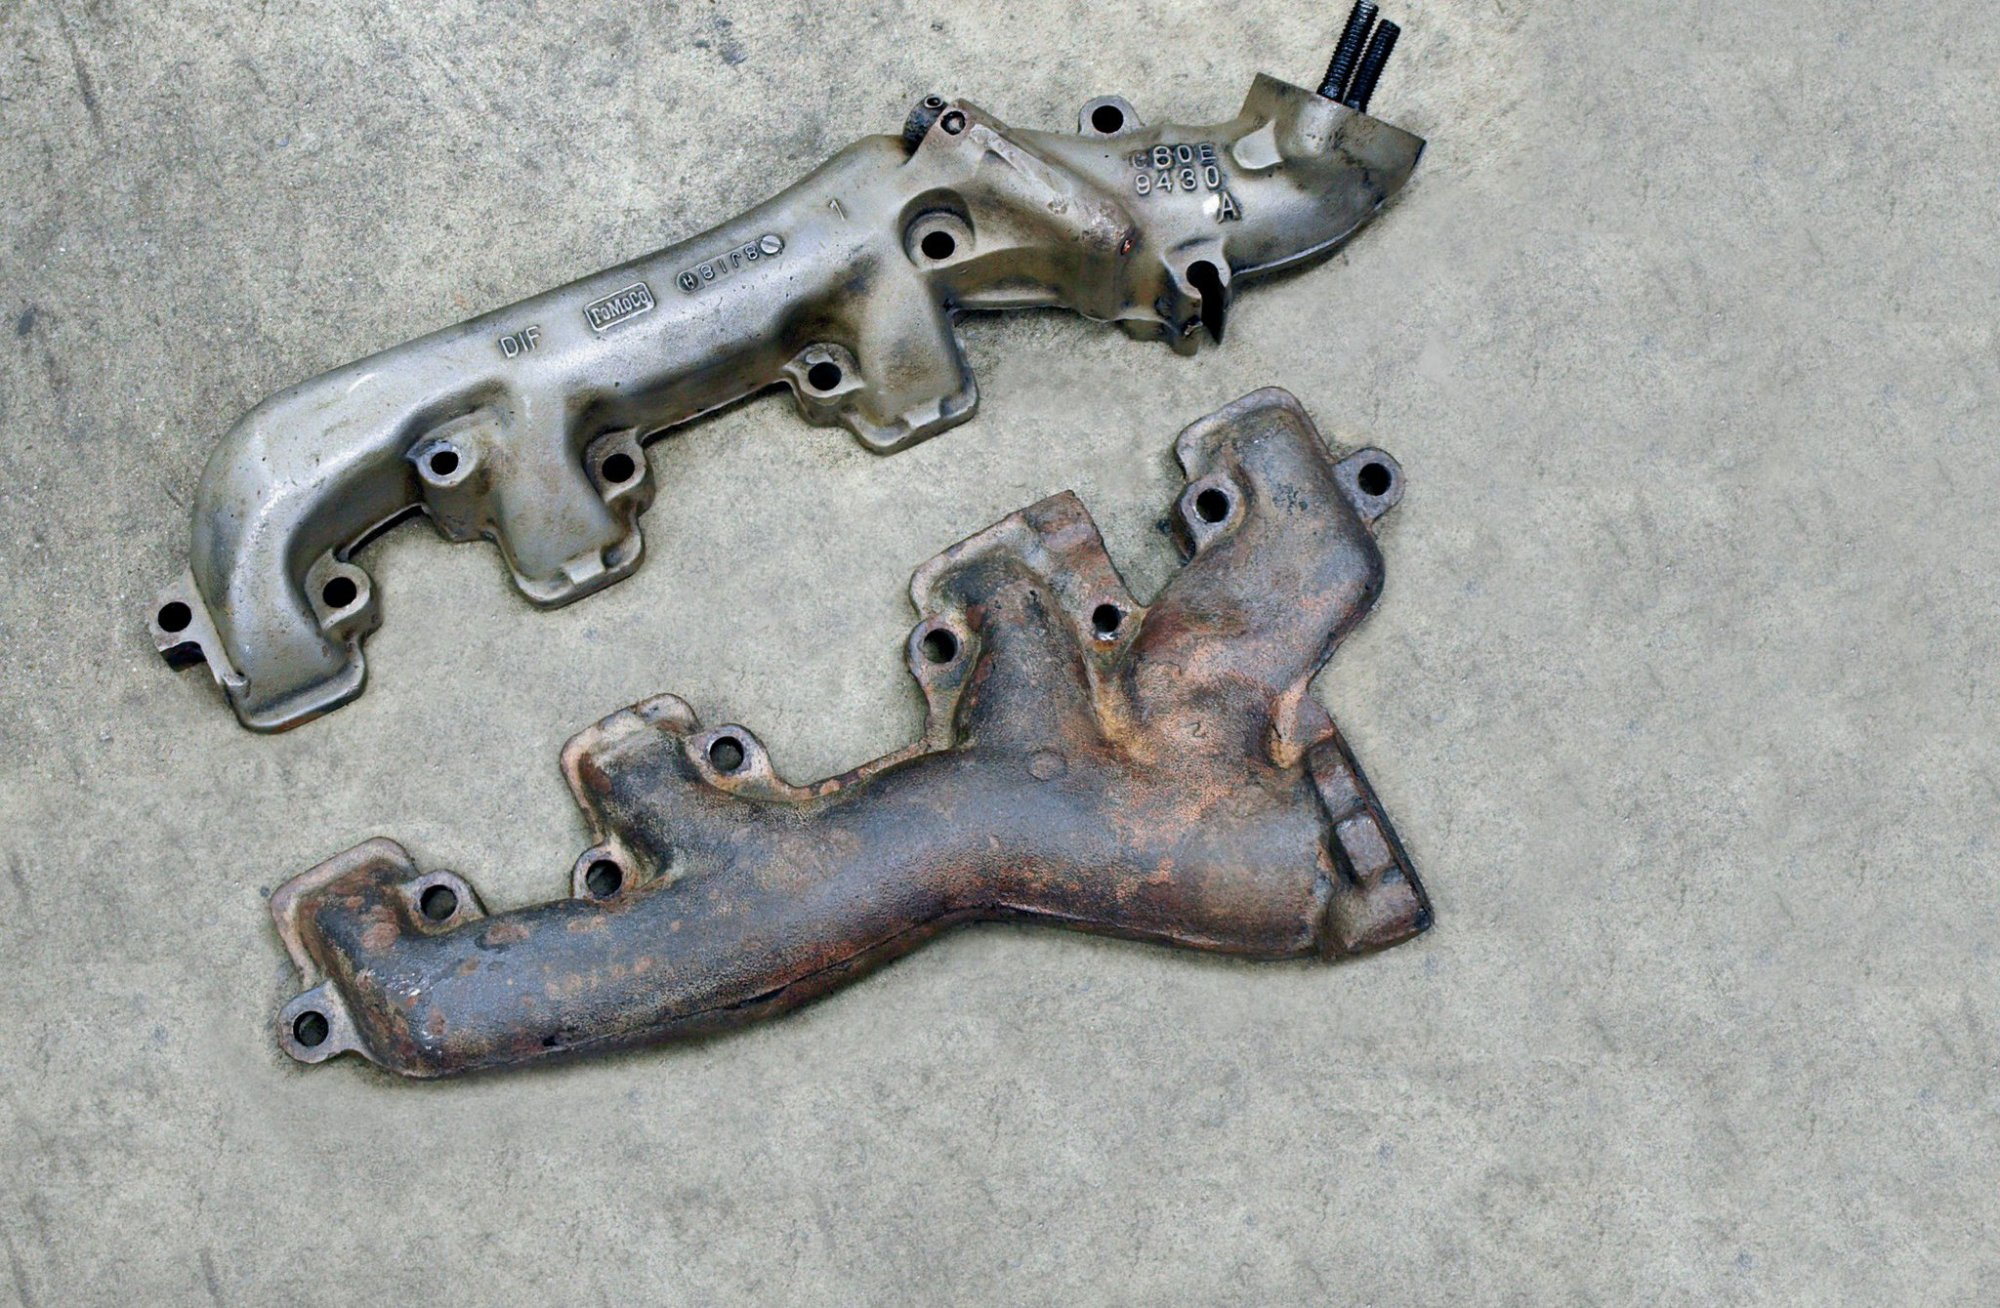 hight resolution of dimensionally identical to the shelby 428 the 390 mustang exhaust manifolds were used on all 67 g t 500s except for three cars ordered with the 427 side